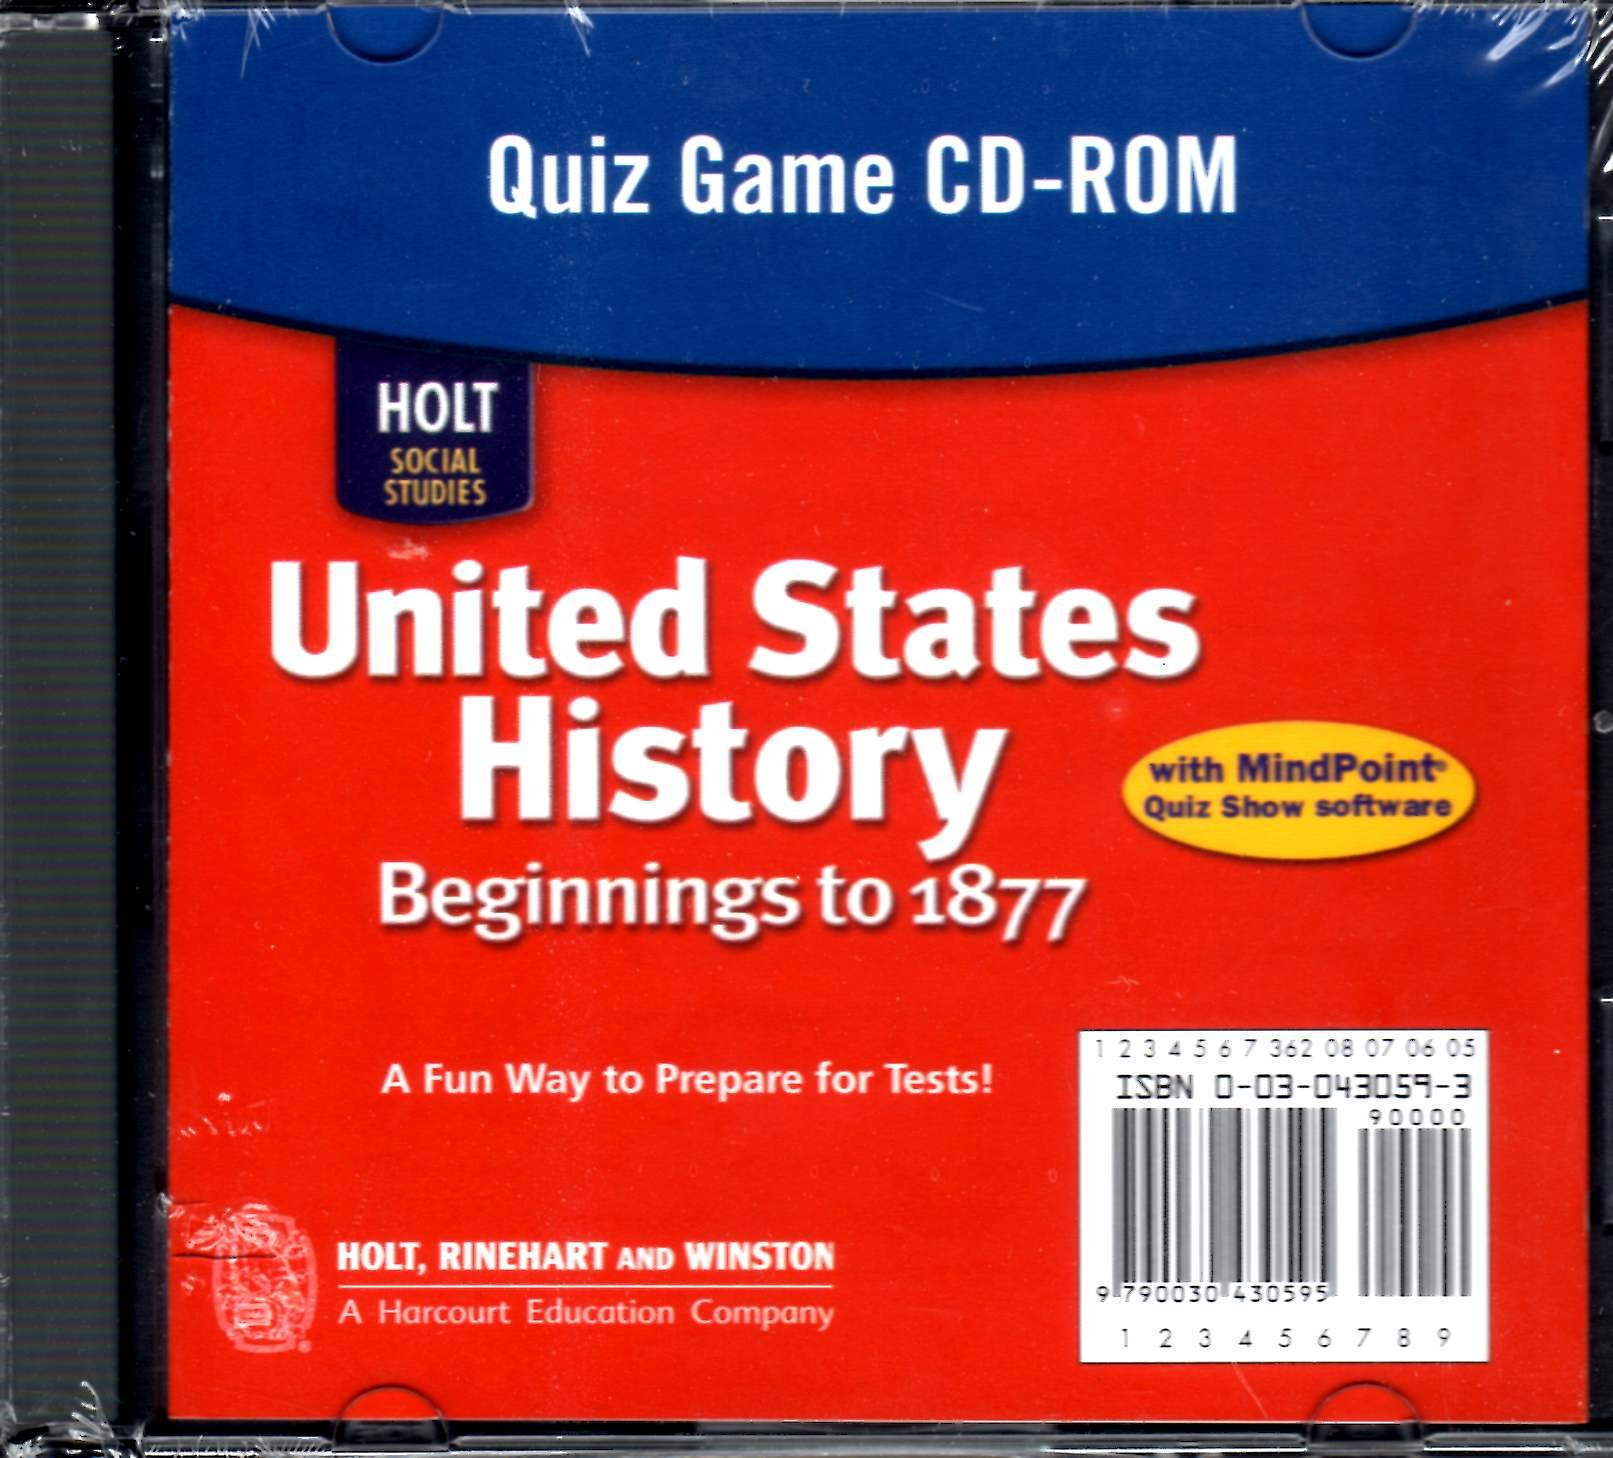 Download Holt Social Studies: United States History: Beginnings to 1877: Quiz Game CD-ROM pdf